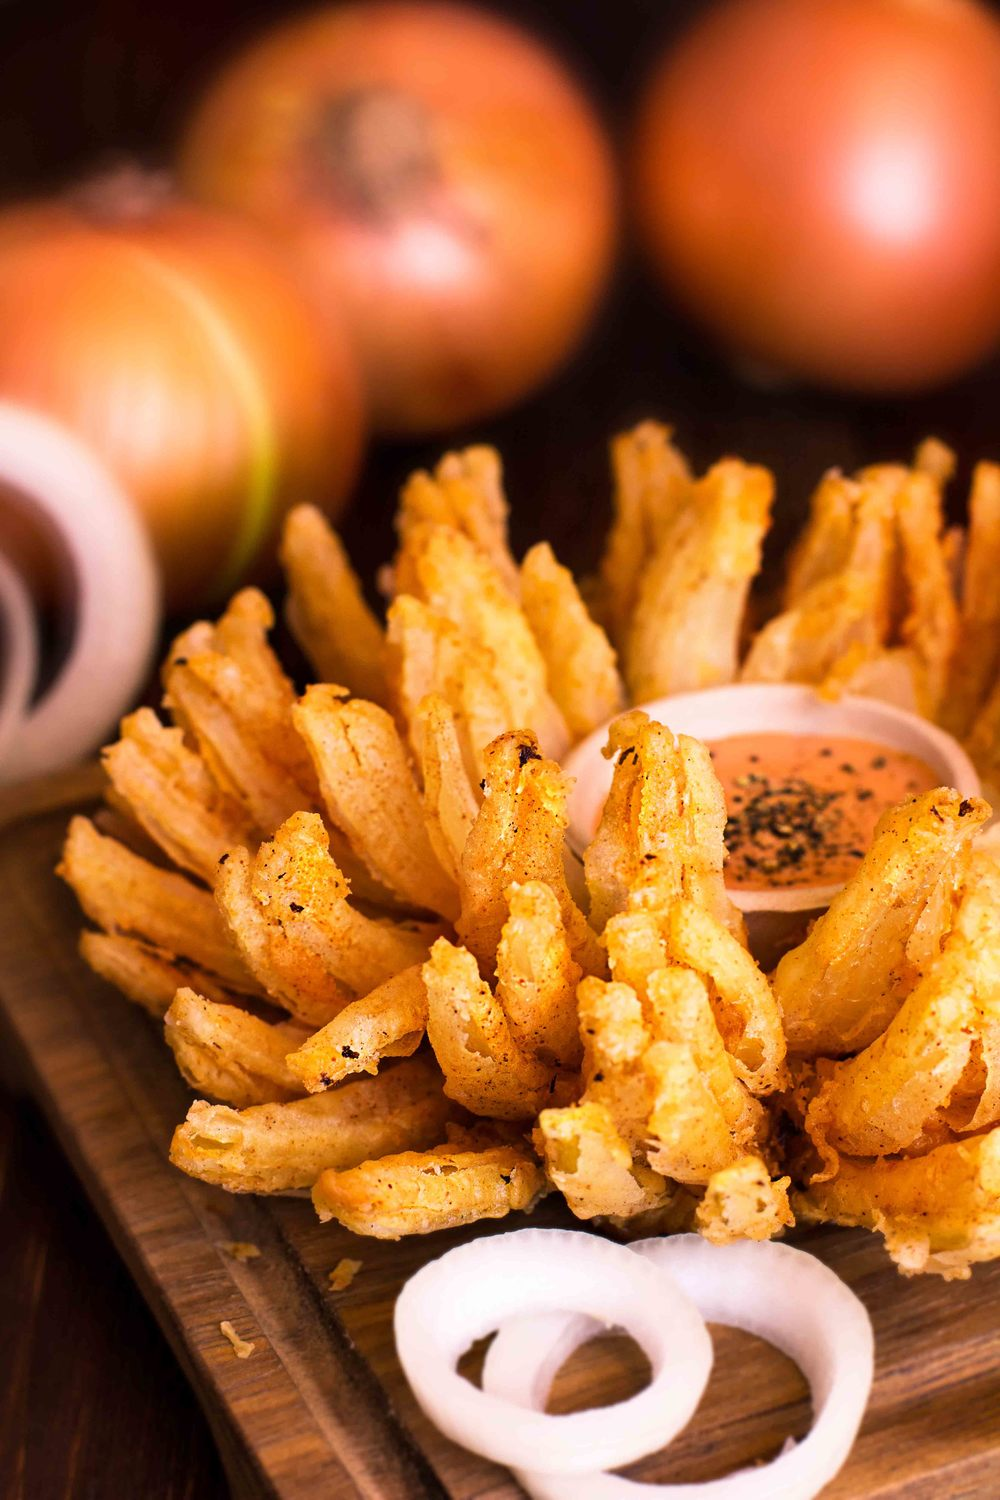 Blooming onion (ver).jpg